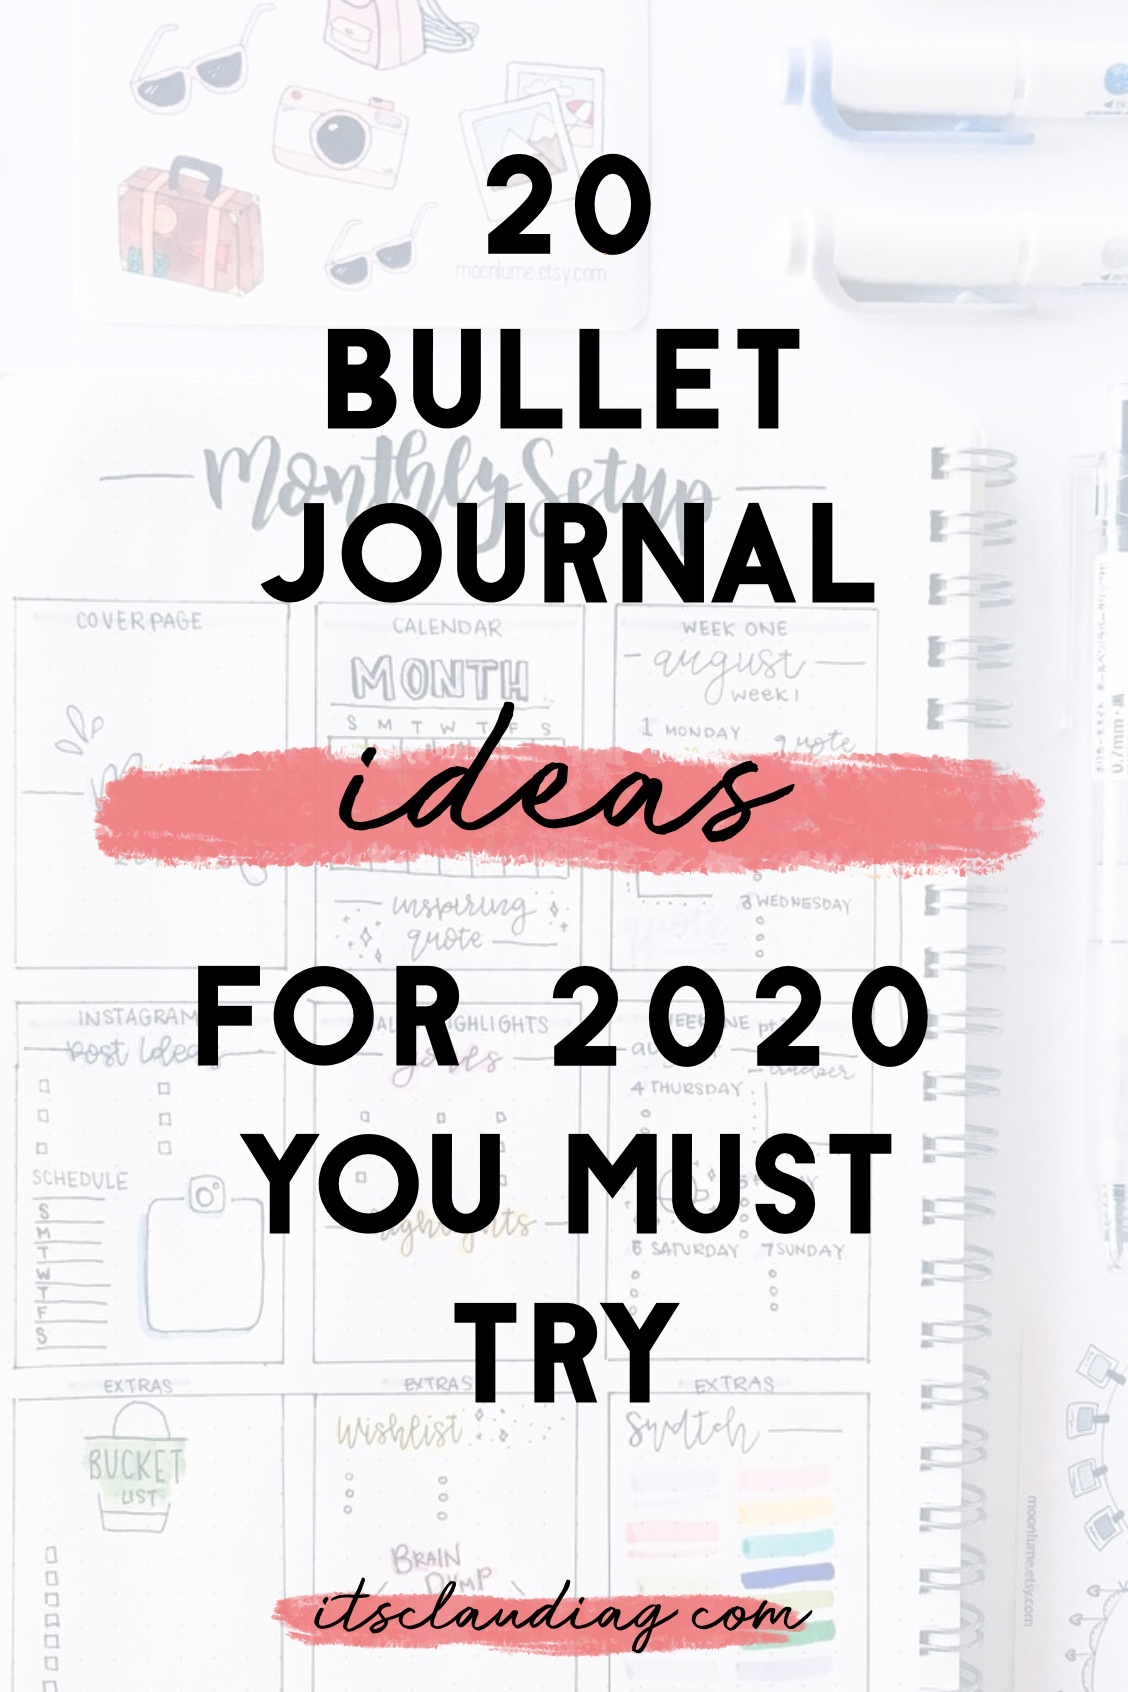 20 Bullet Journal Ideas for February   Its Claudia G